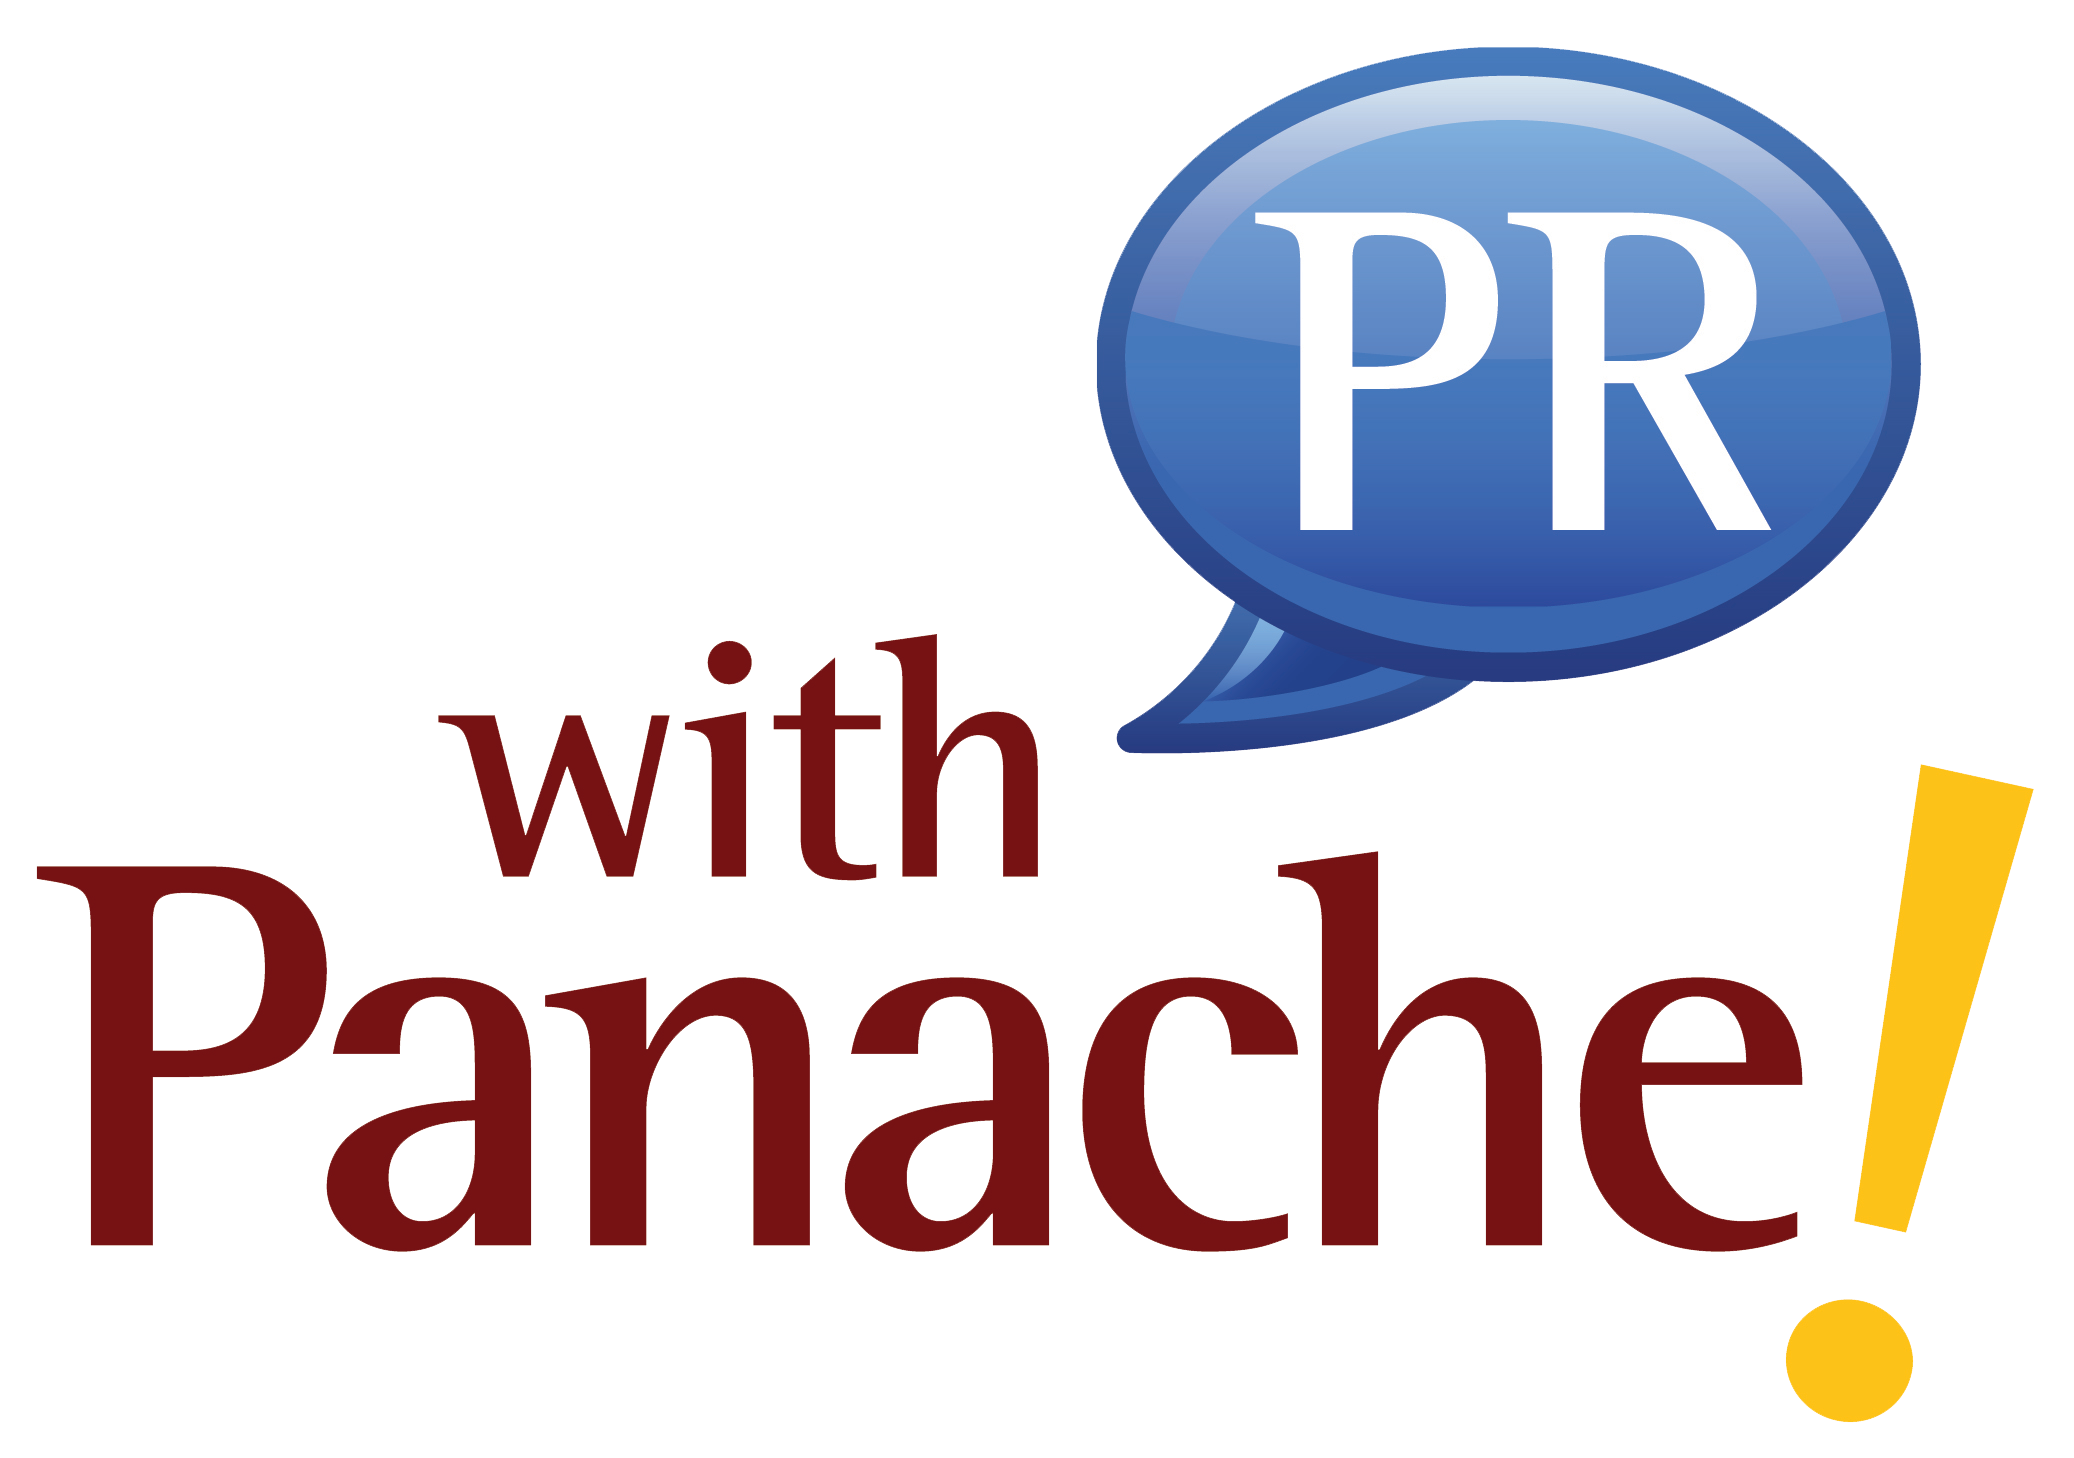 Join PR with Panache! to honor Dr. Karen Billings at TCEA